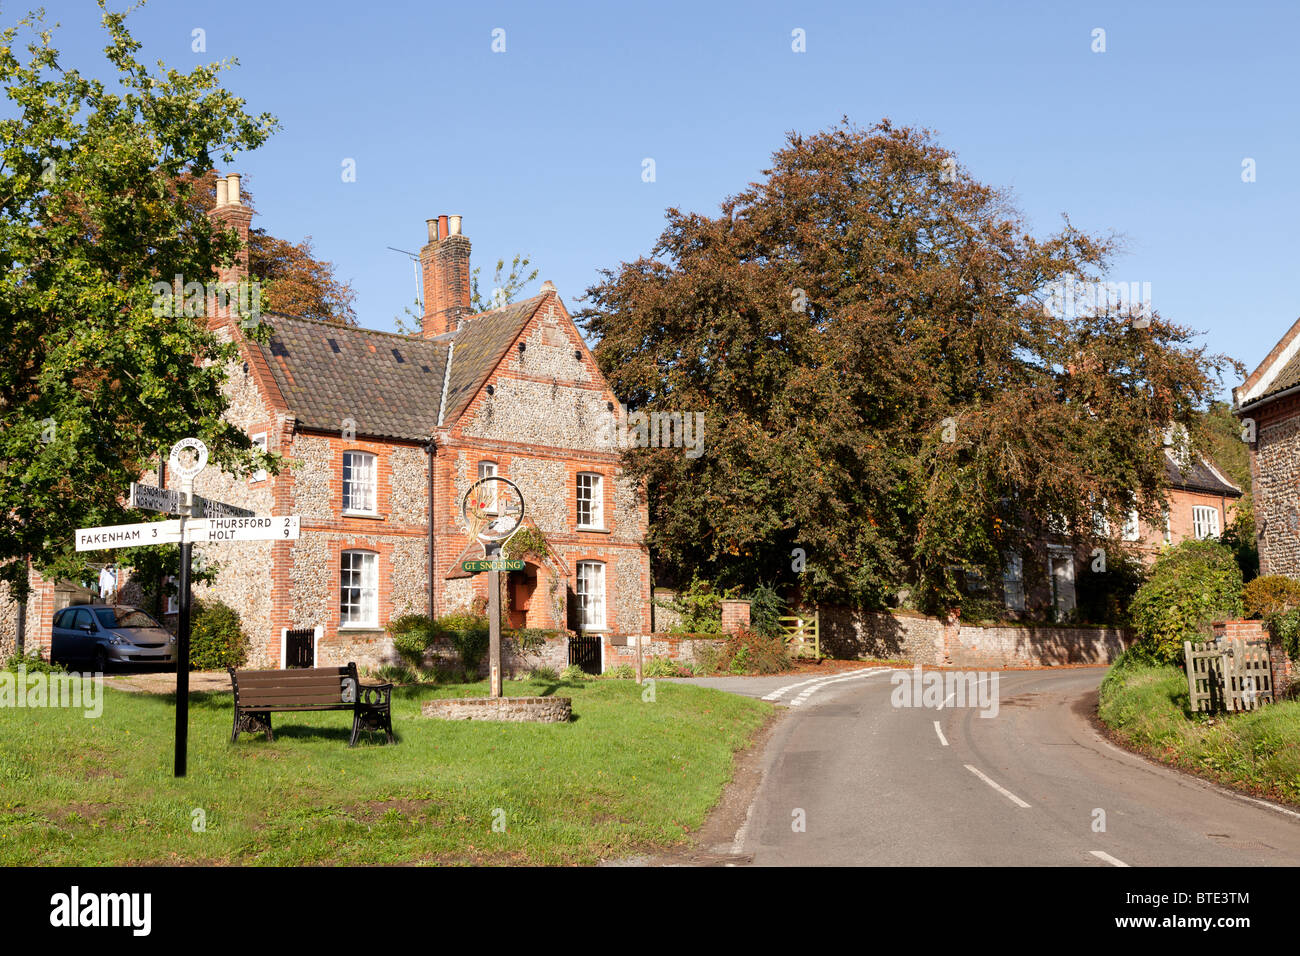 The traditional north Norfolk village of Great Snoring, England, UK. - Stock Image